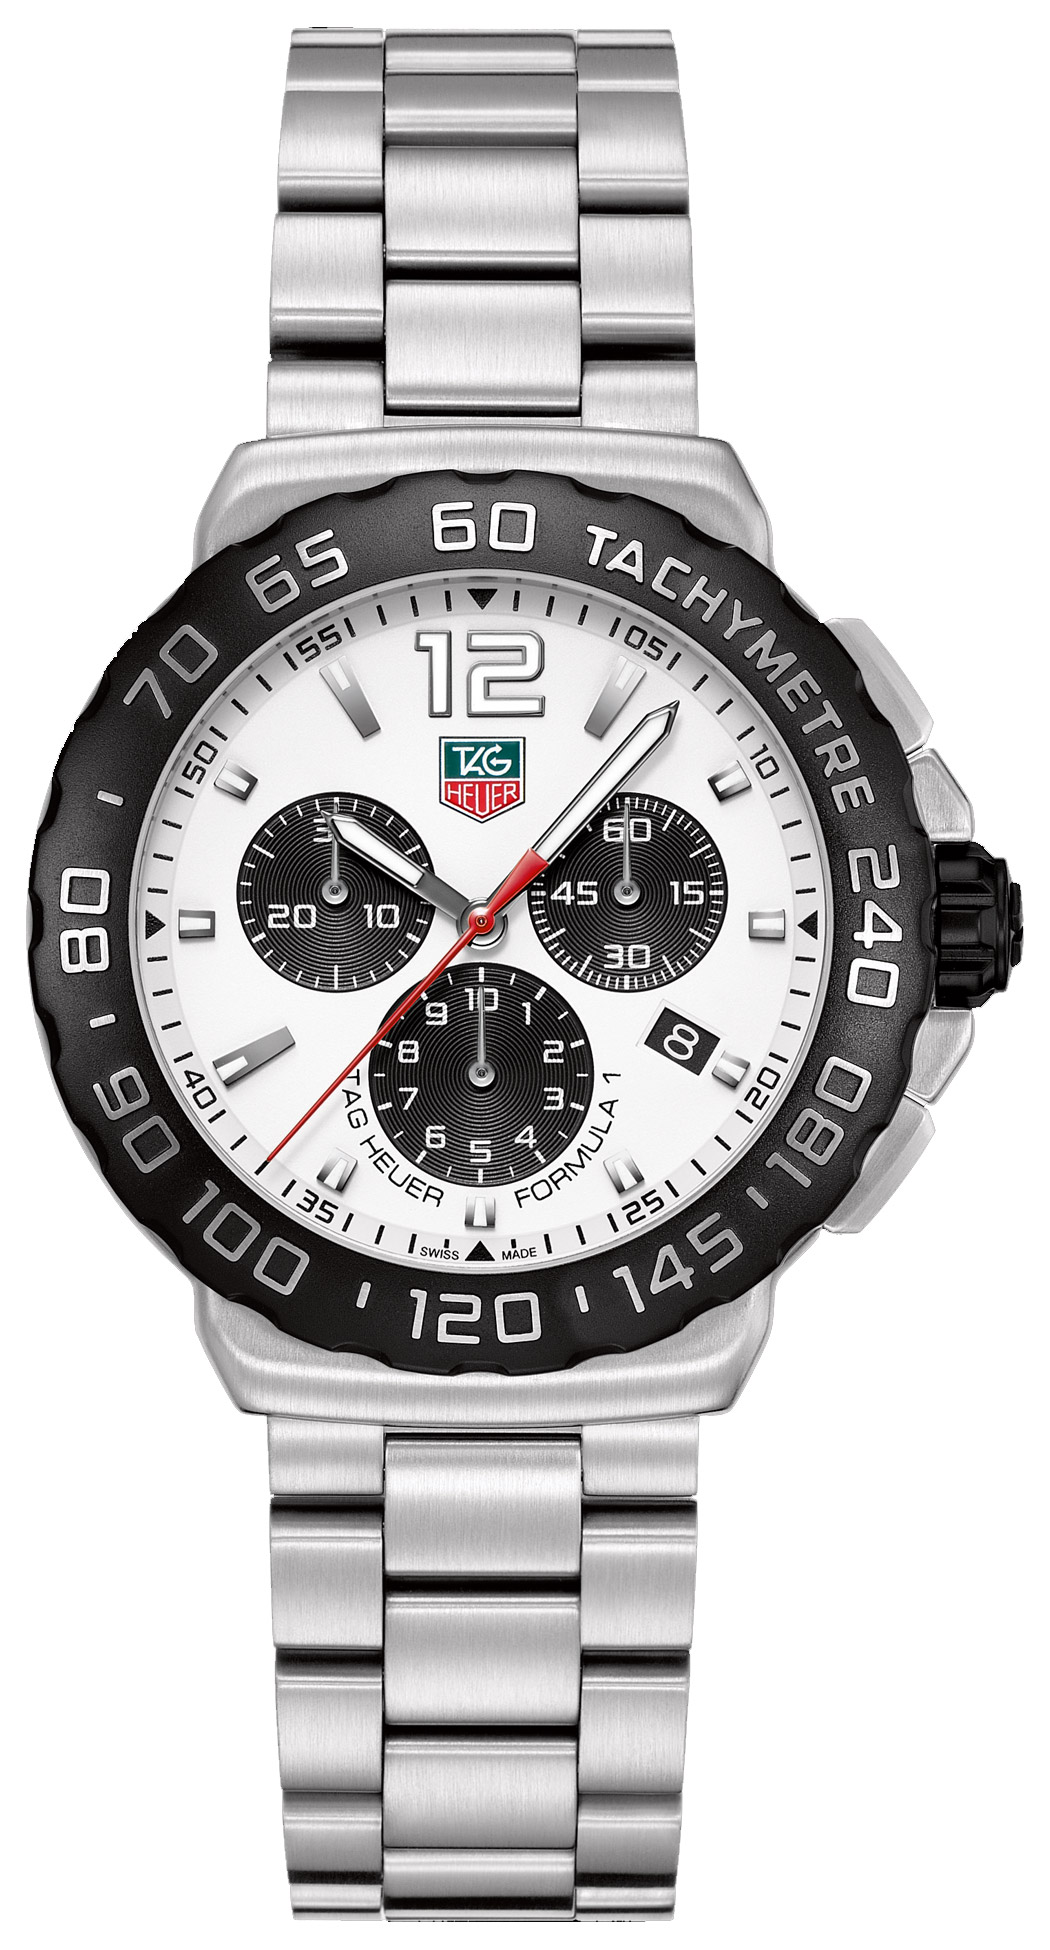 95c07eddf1f Edouard Heuer founded his company, TAG Heuer, which set the standard for precision  timepieces.